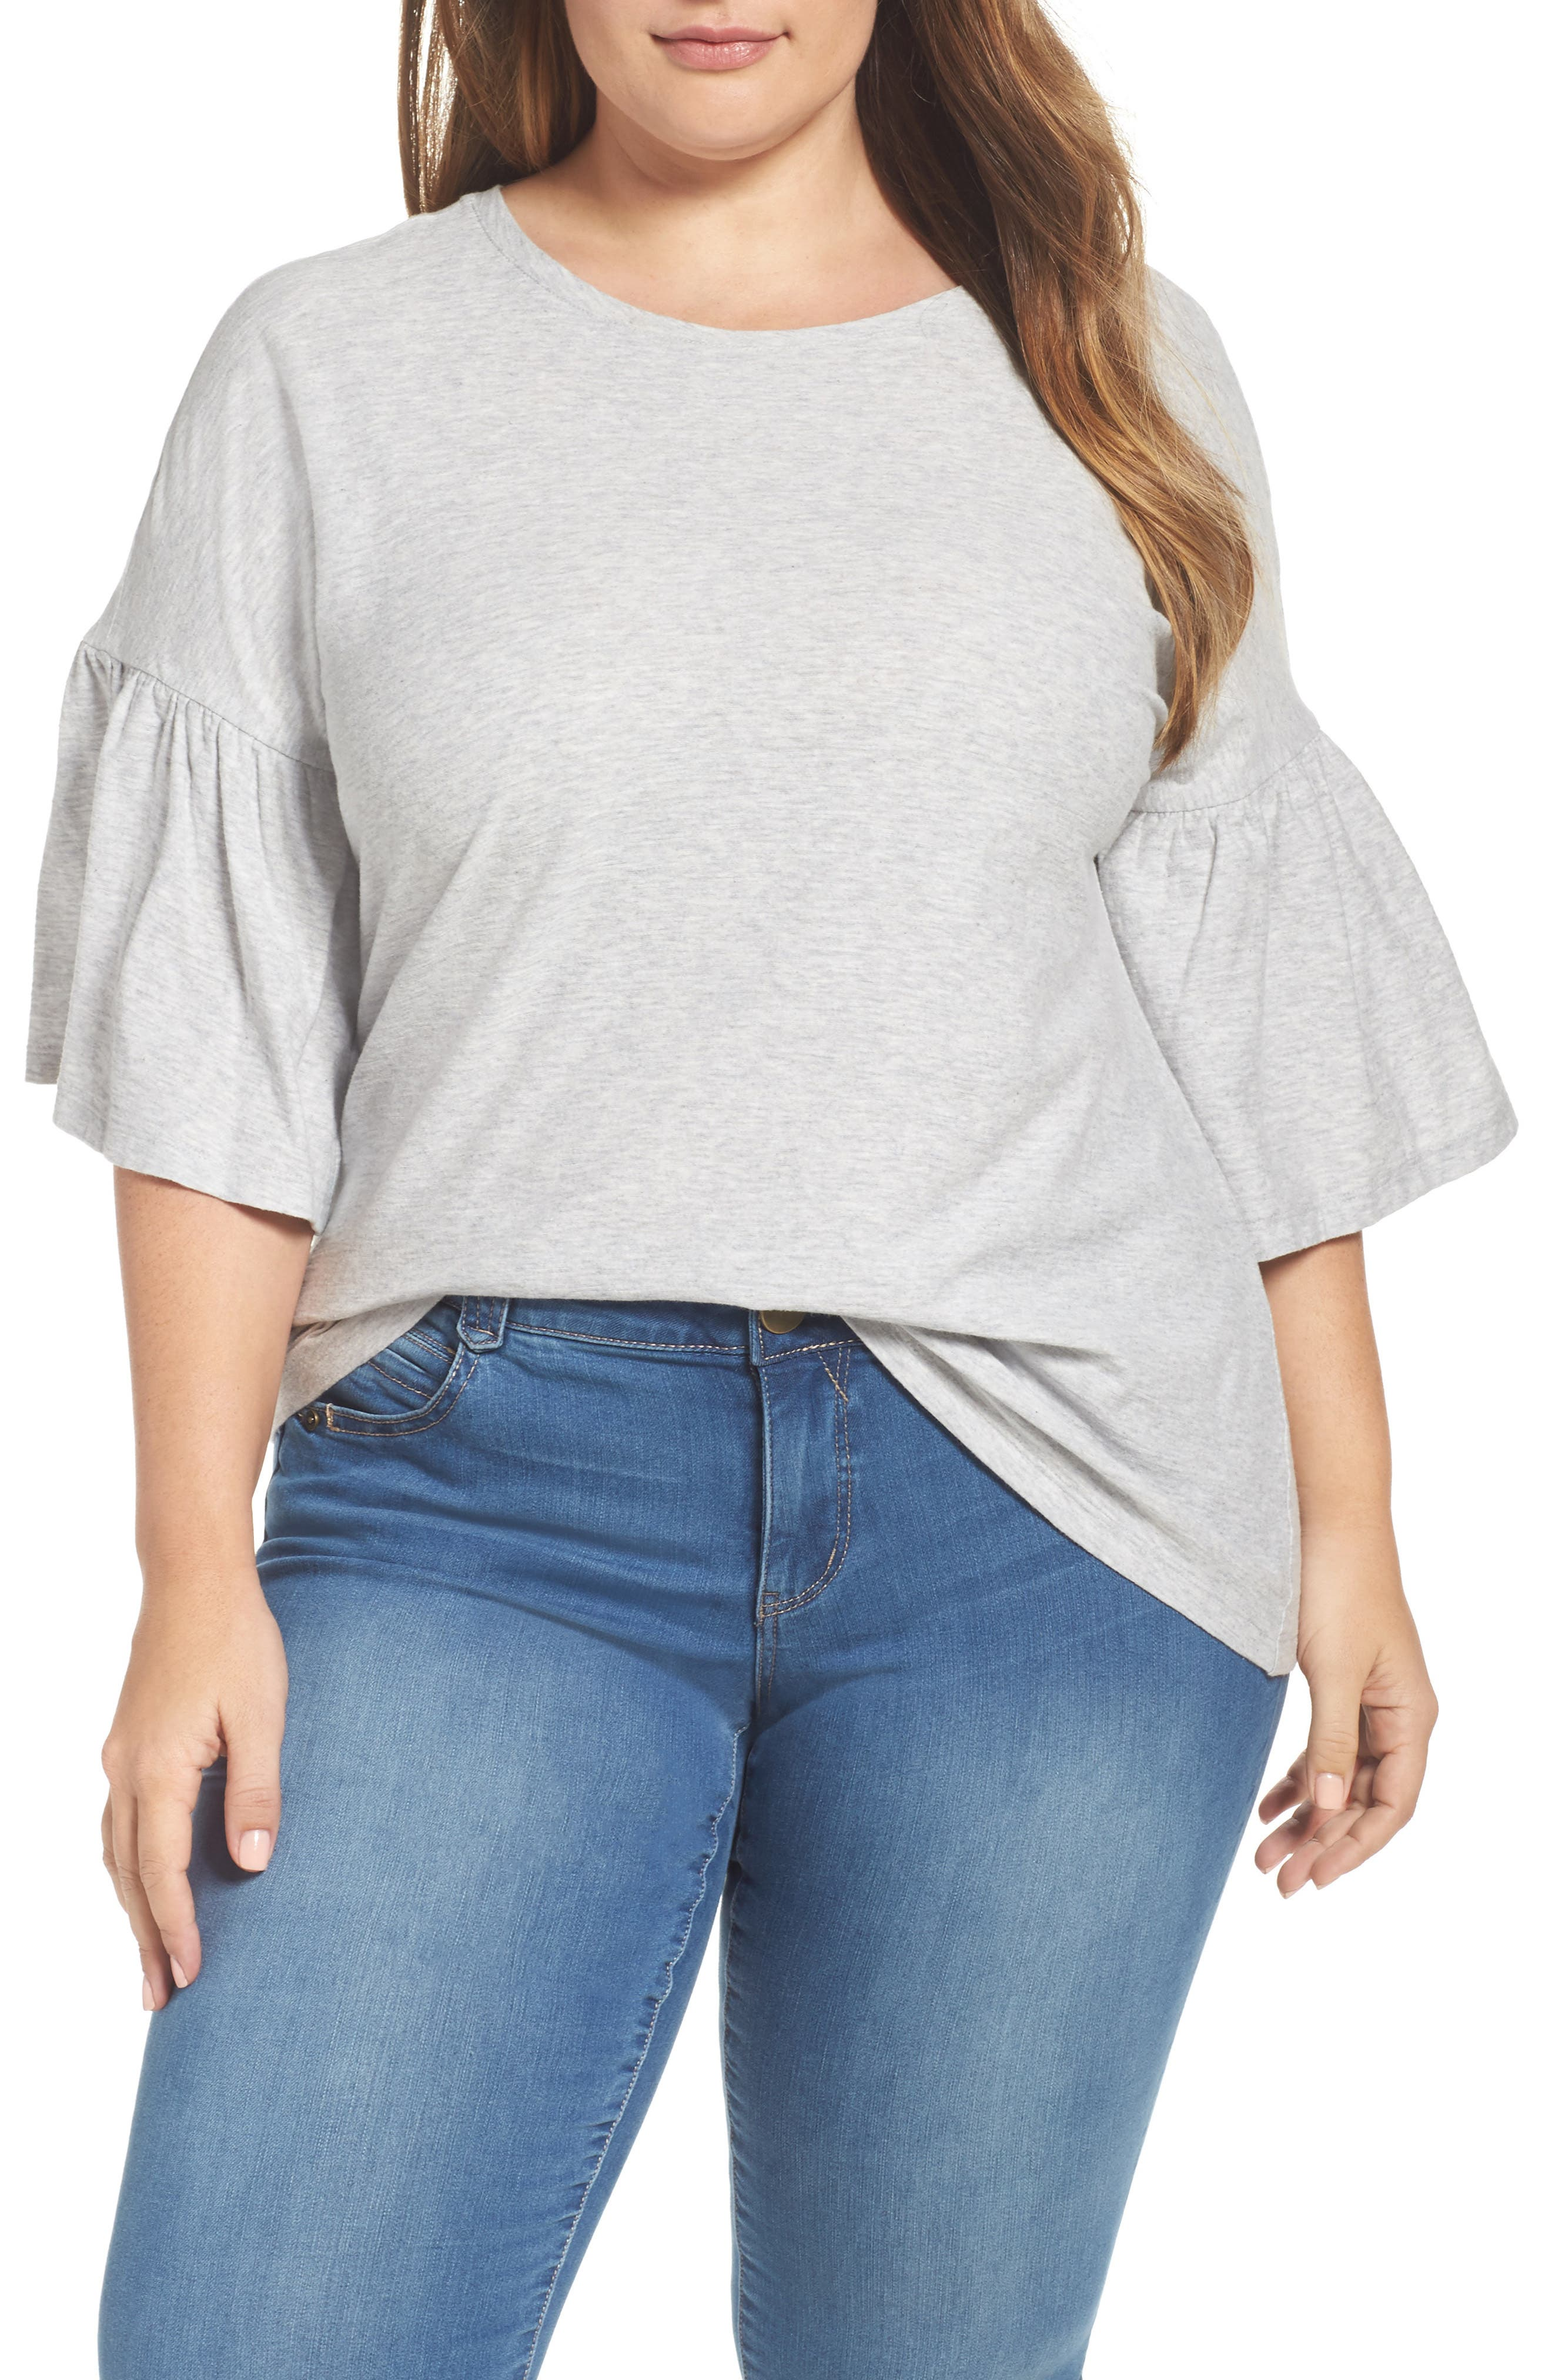 Main Image - Vince Camuto Relaxed Bell Sleeve Cotton Tee (Plus Size)